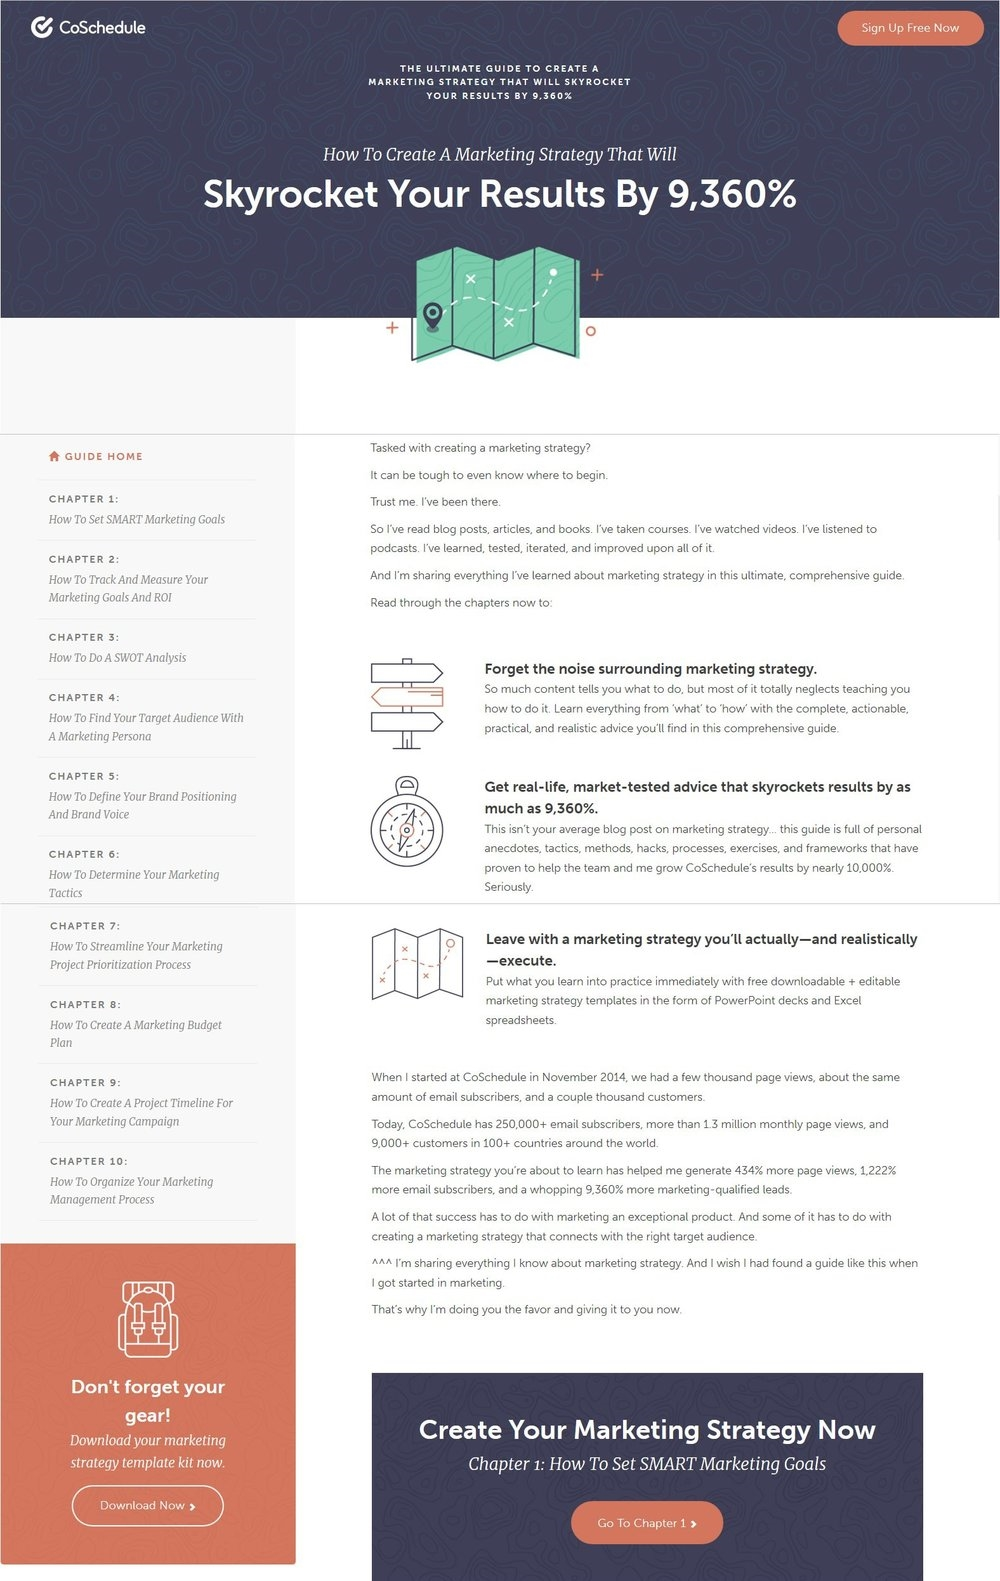 Landing Pages Best Practices! How to Solve the Labyrinth of Converting Landing Pages